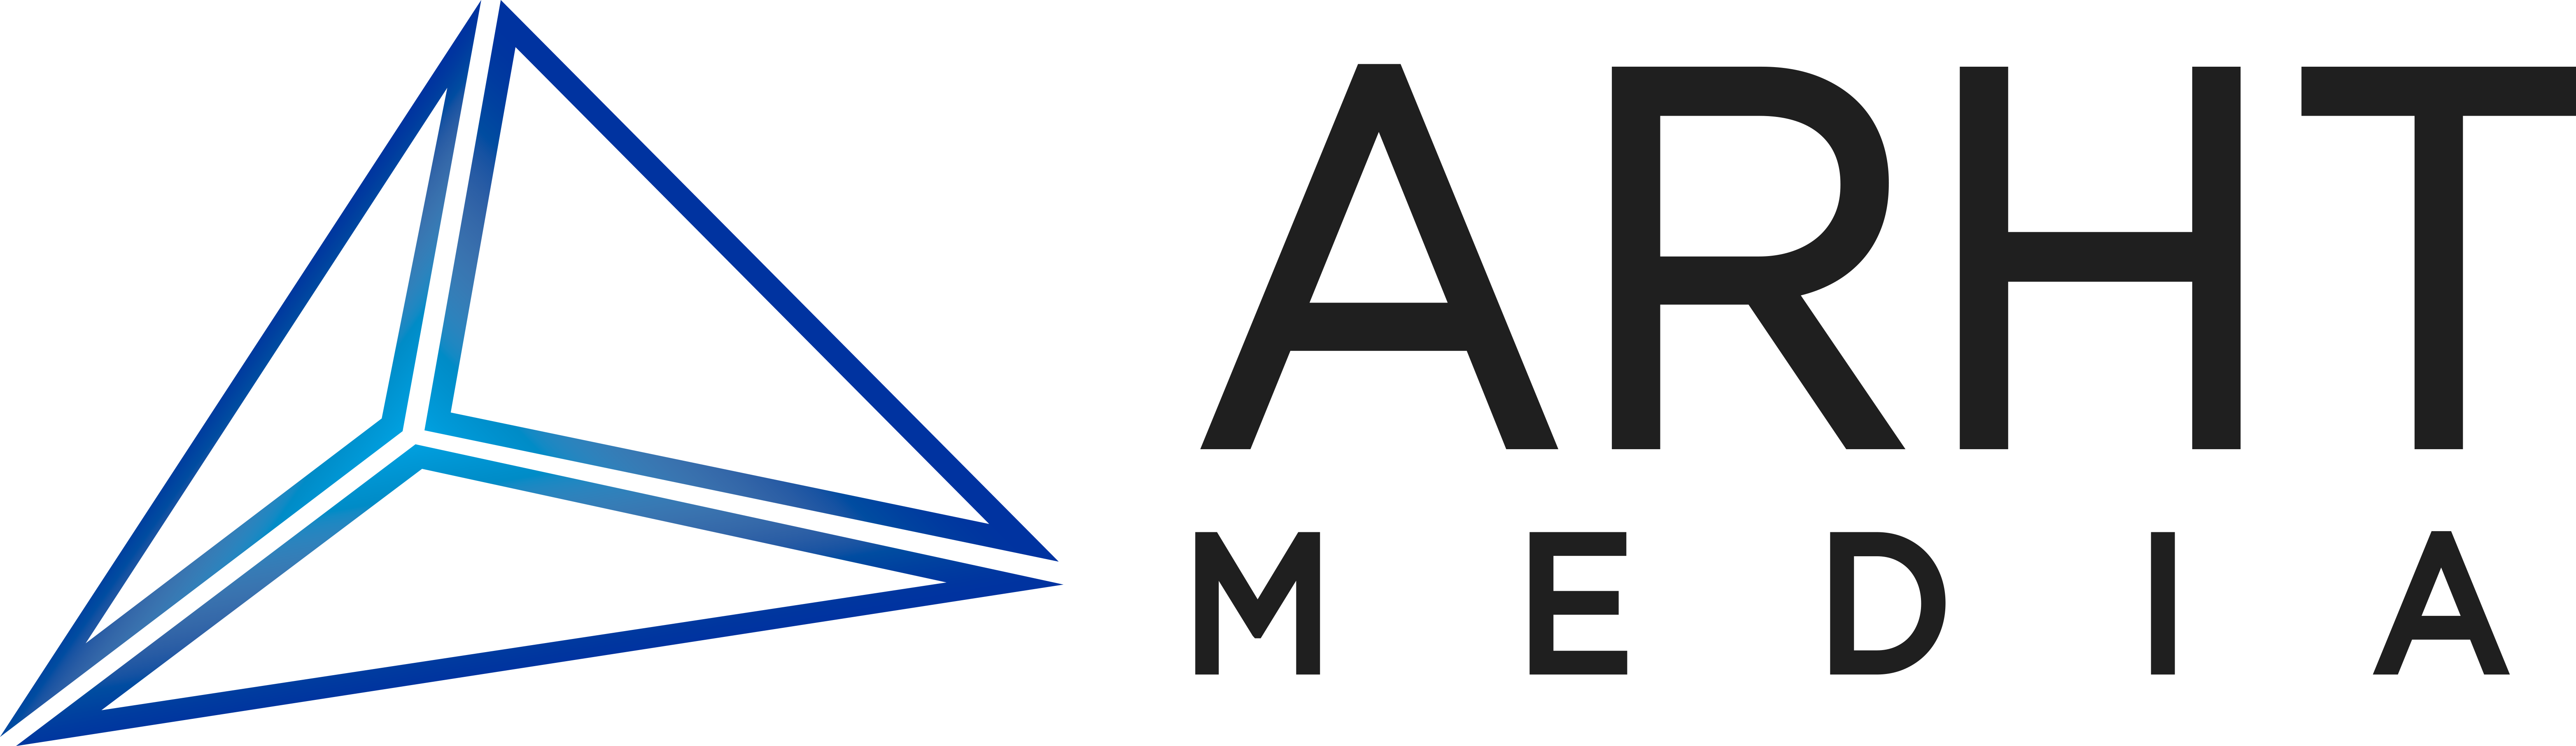 ARHT Media Announces Subscription Bundles To Drive Accelerated Recurring Revenues Powered by the ARHT Engine Software